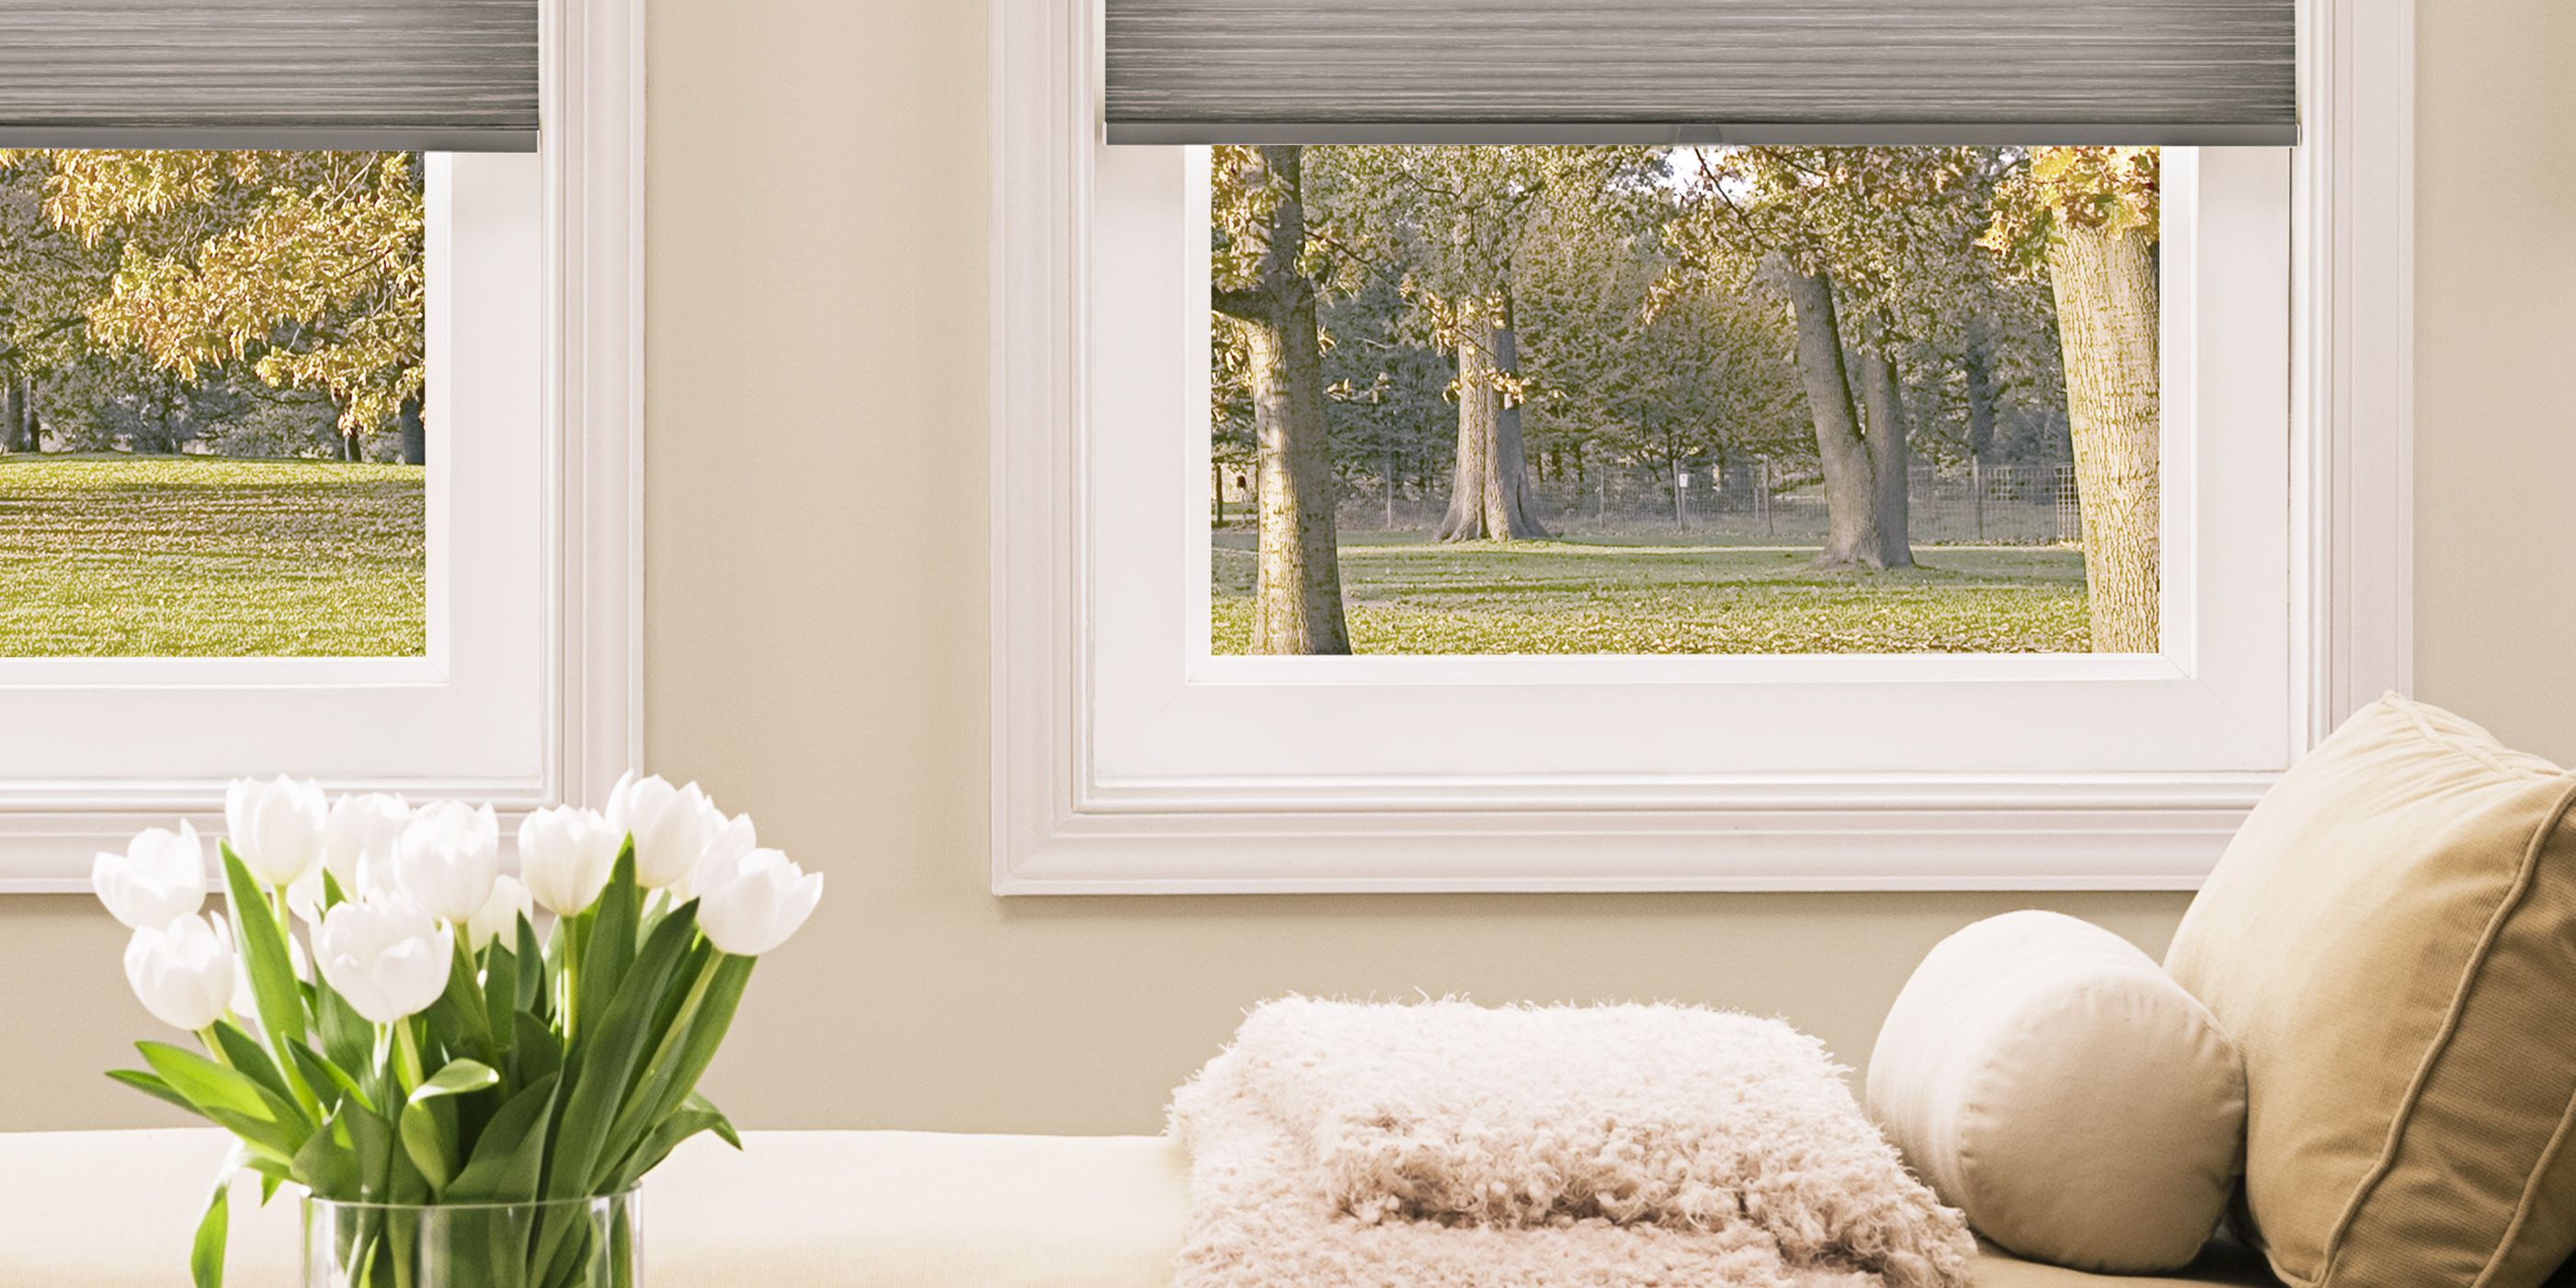 smartblinds simplify buy best shades en blinds intelligent canada ca that life douglas hunter your